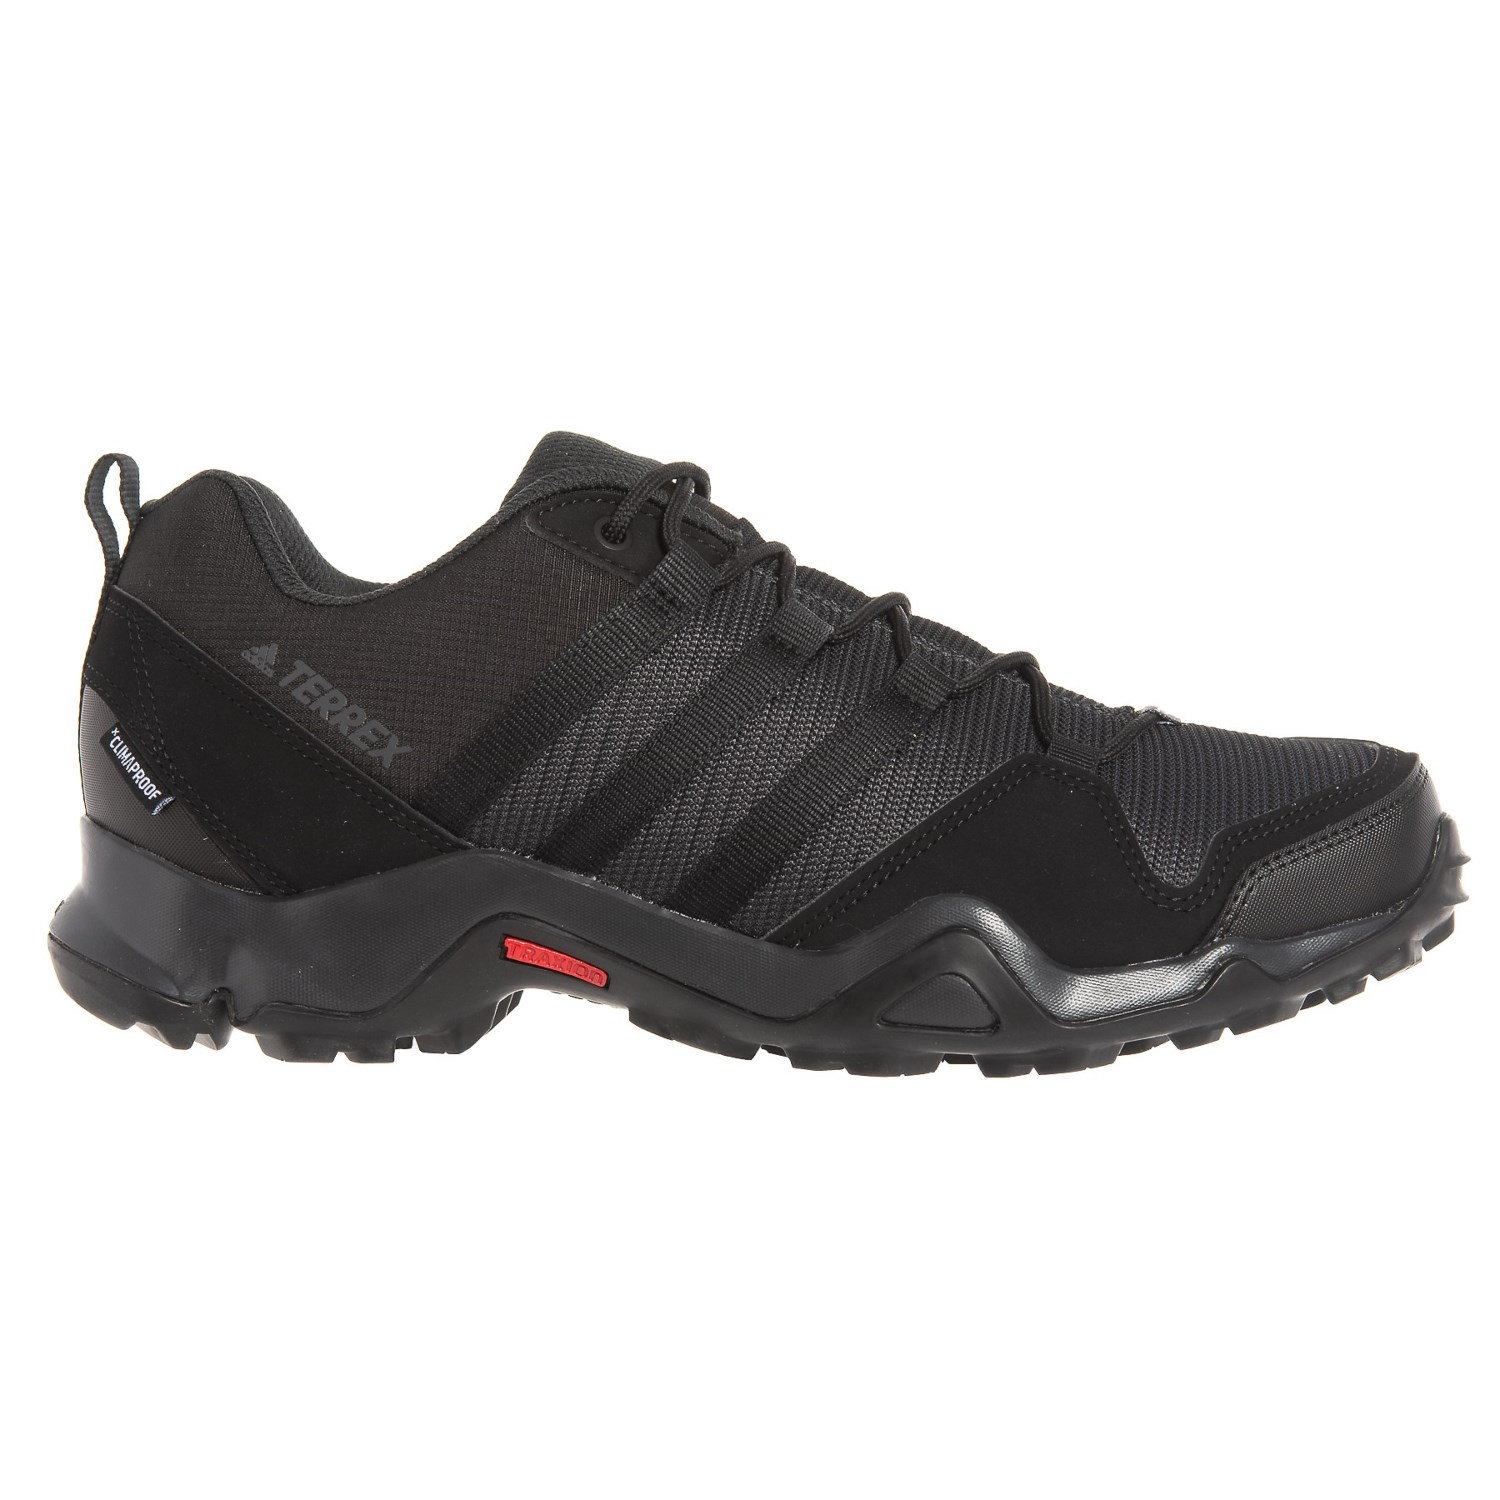 3443a795a17 adidas Terrex AX2 ClimaProof® Hiking Shoes - Waterproof (For Men)